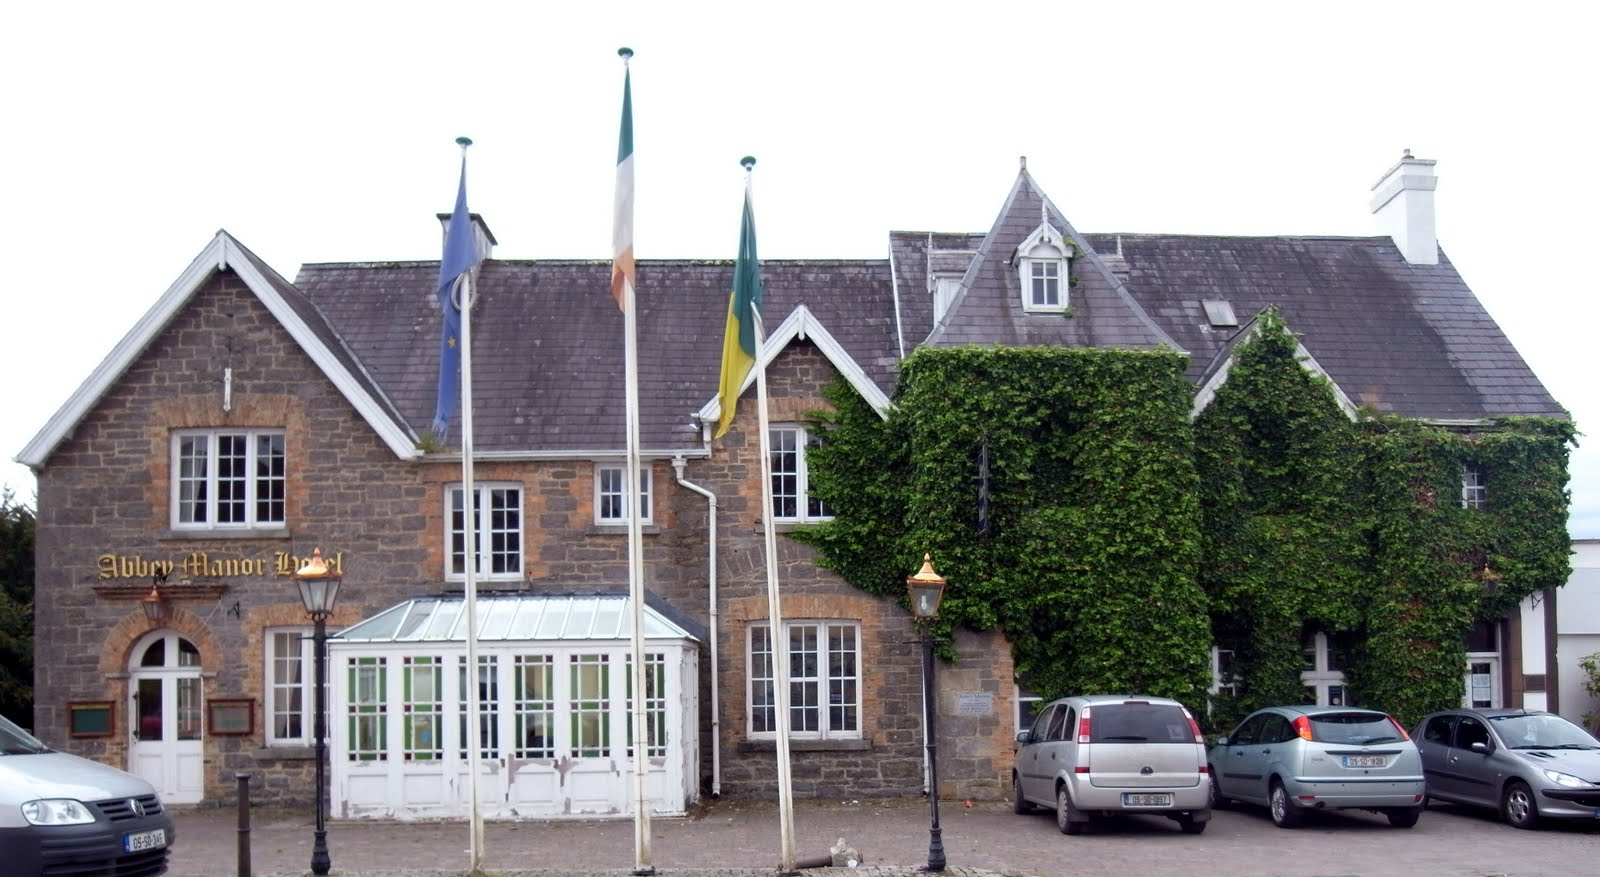 The Abbey Manor Hotel